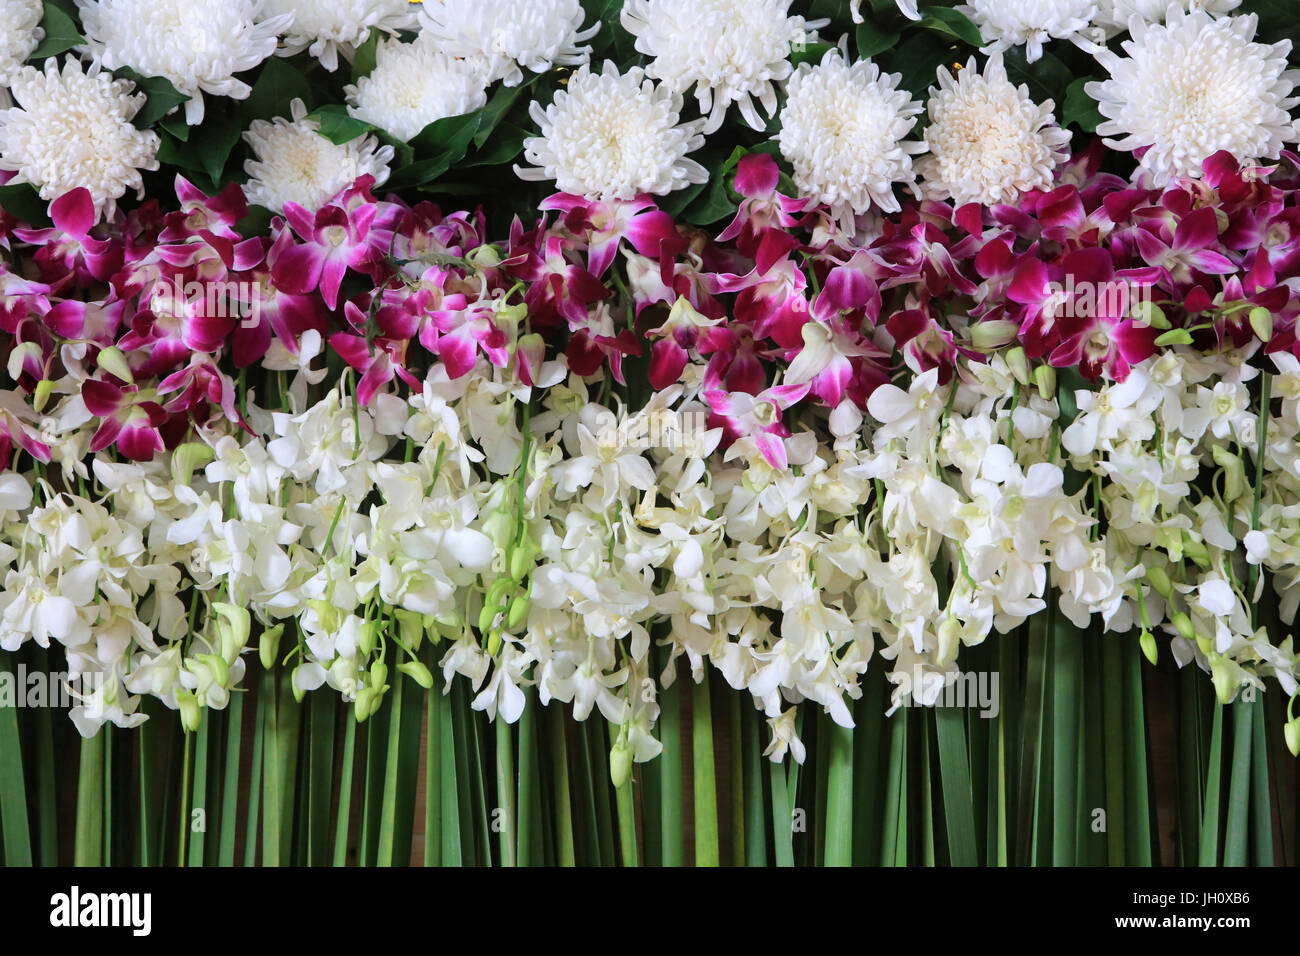 Floral composition. Jasmine and carnation. Wat Ong Teu Mahawihan. Temple of the Heavy Buddha. Vientiane. Laos. - Stock Image